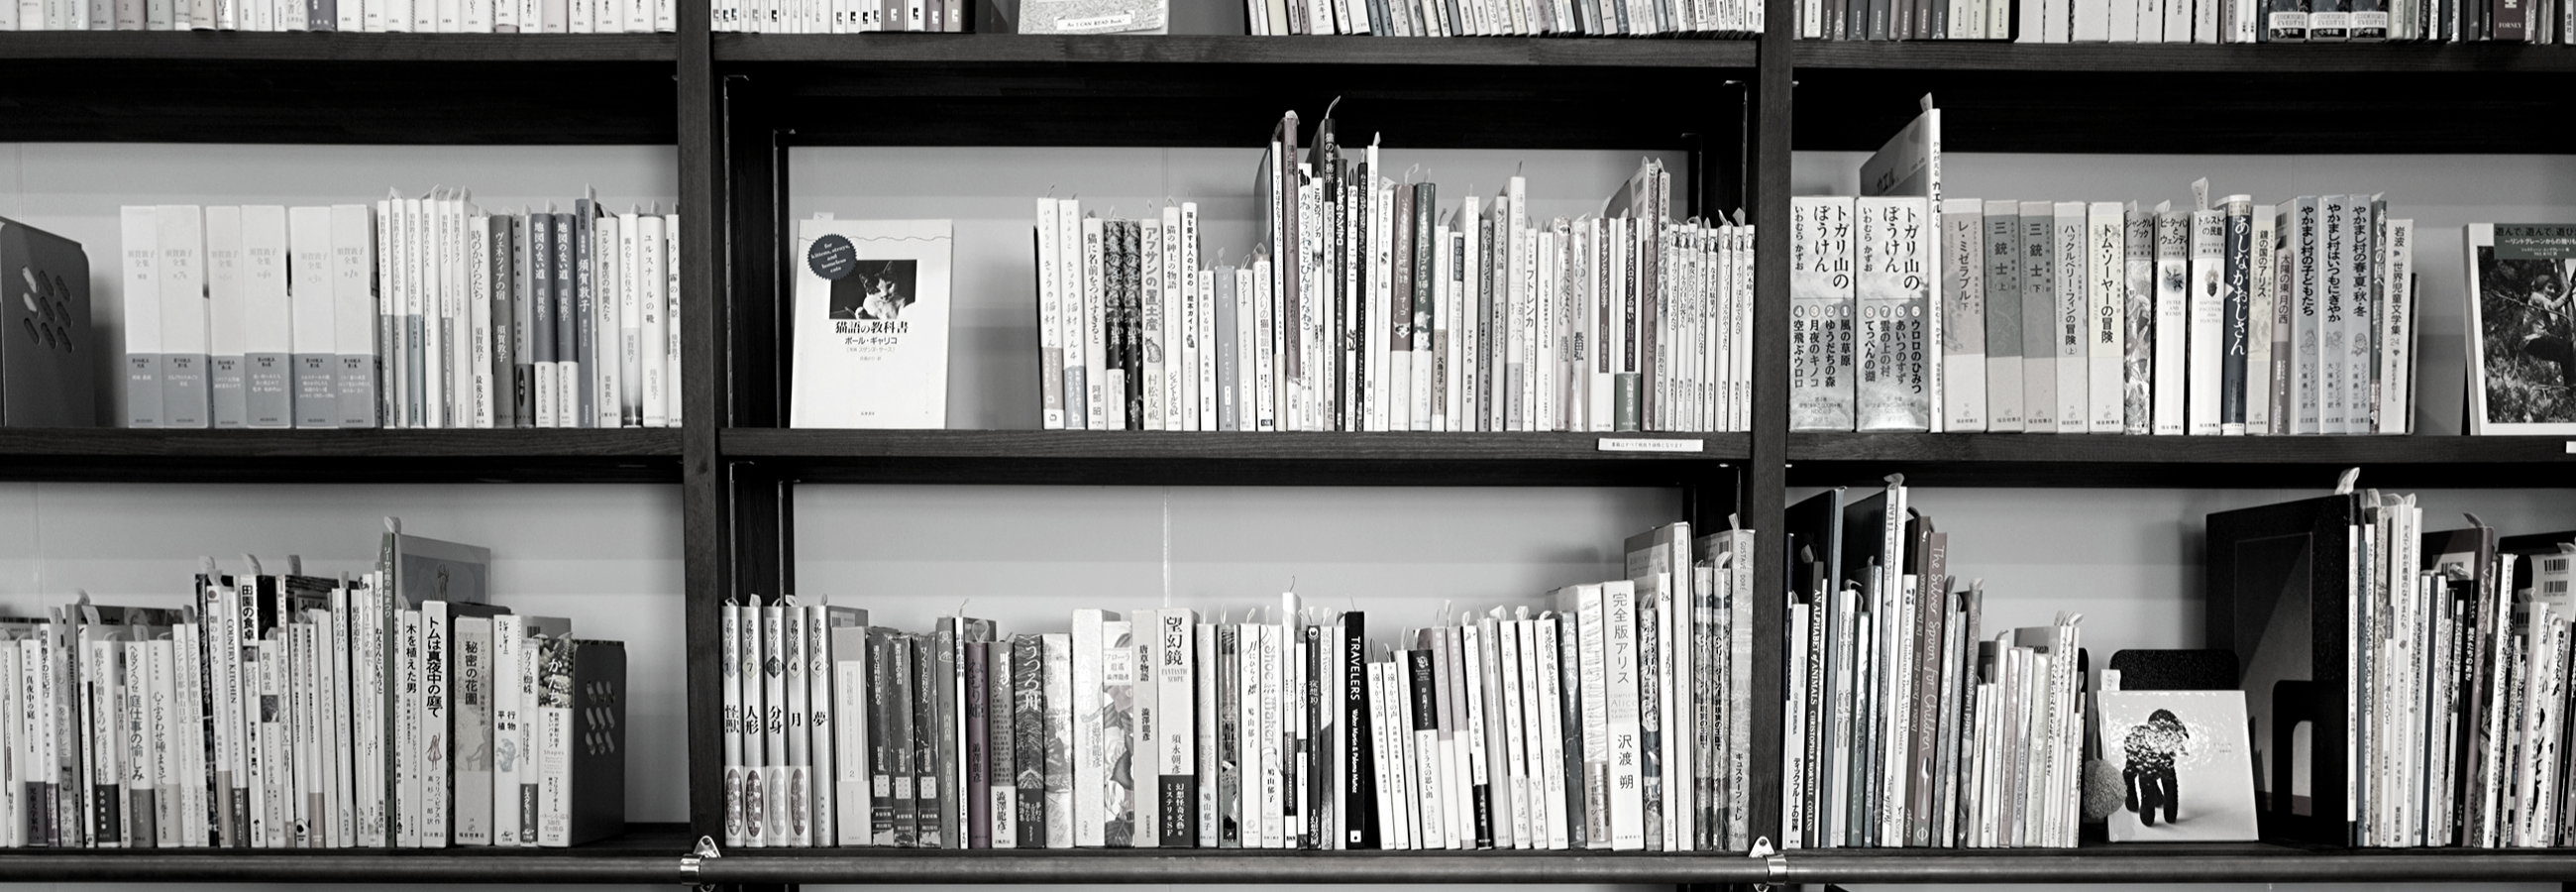 Two sets of bookshelves are shown in black and white.